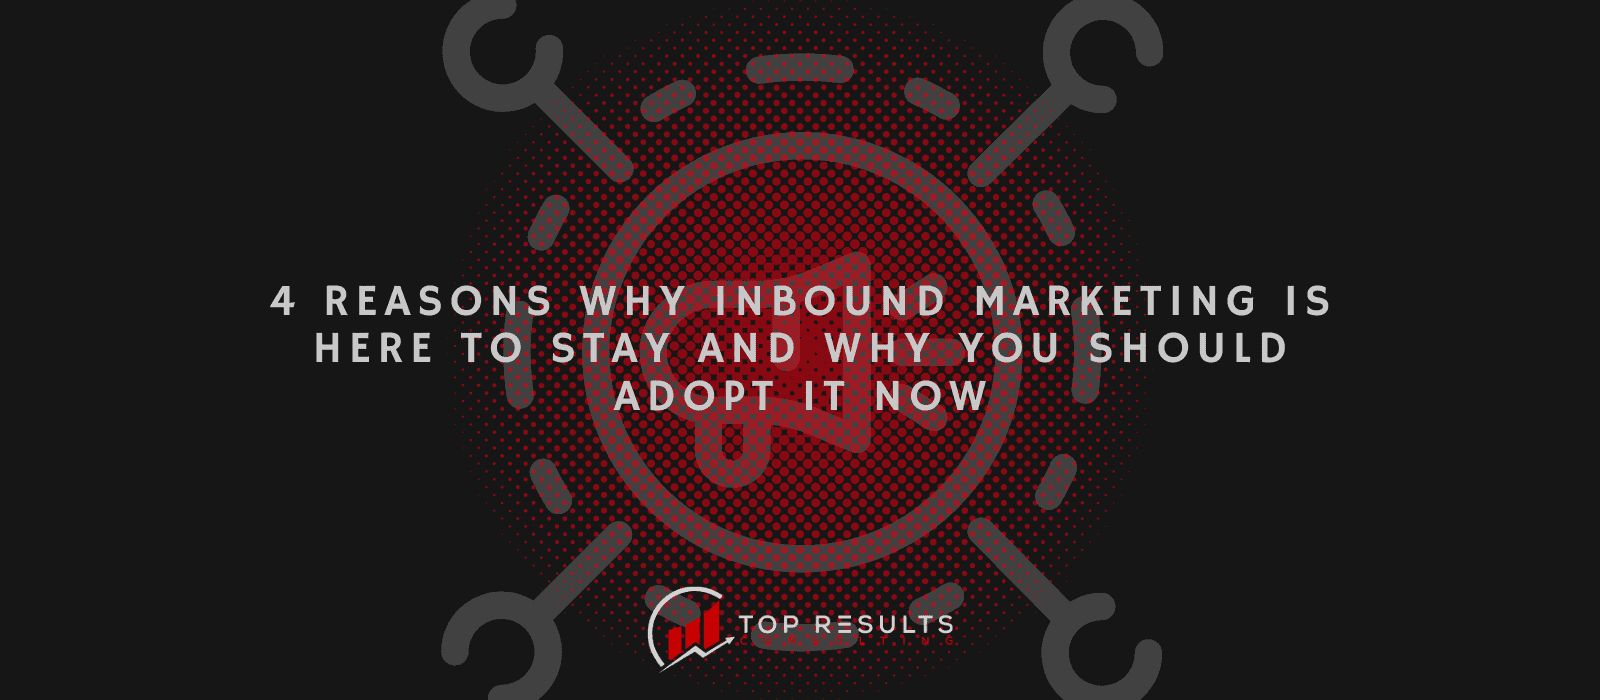 Reasons Why Inbound Marketing Is Here To Stay And Why You Should Adopt It Now